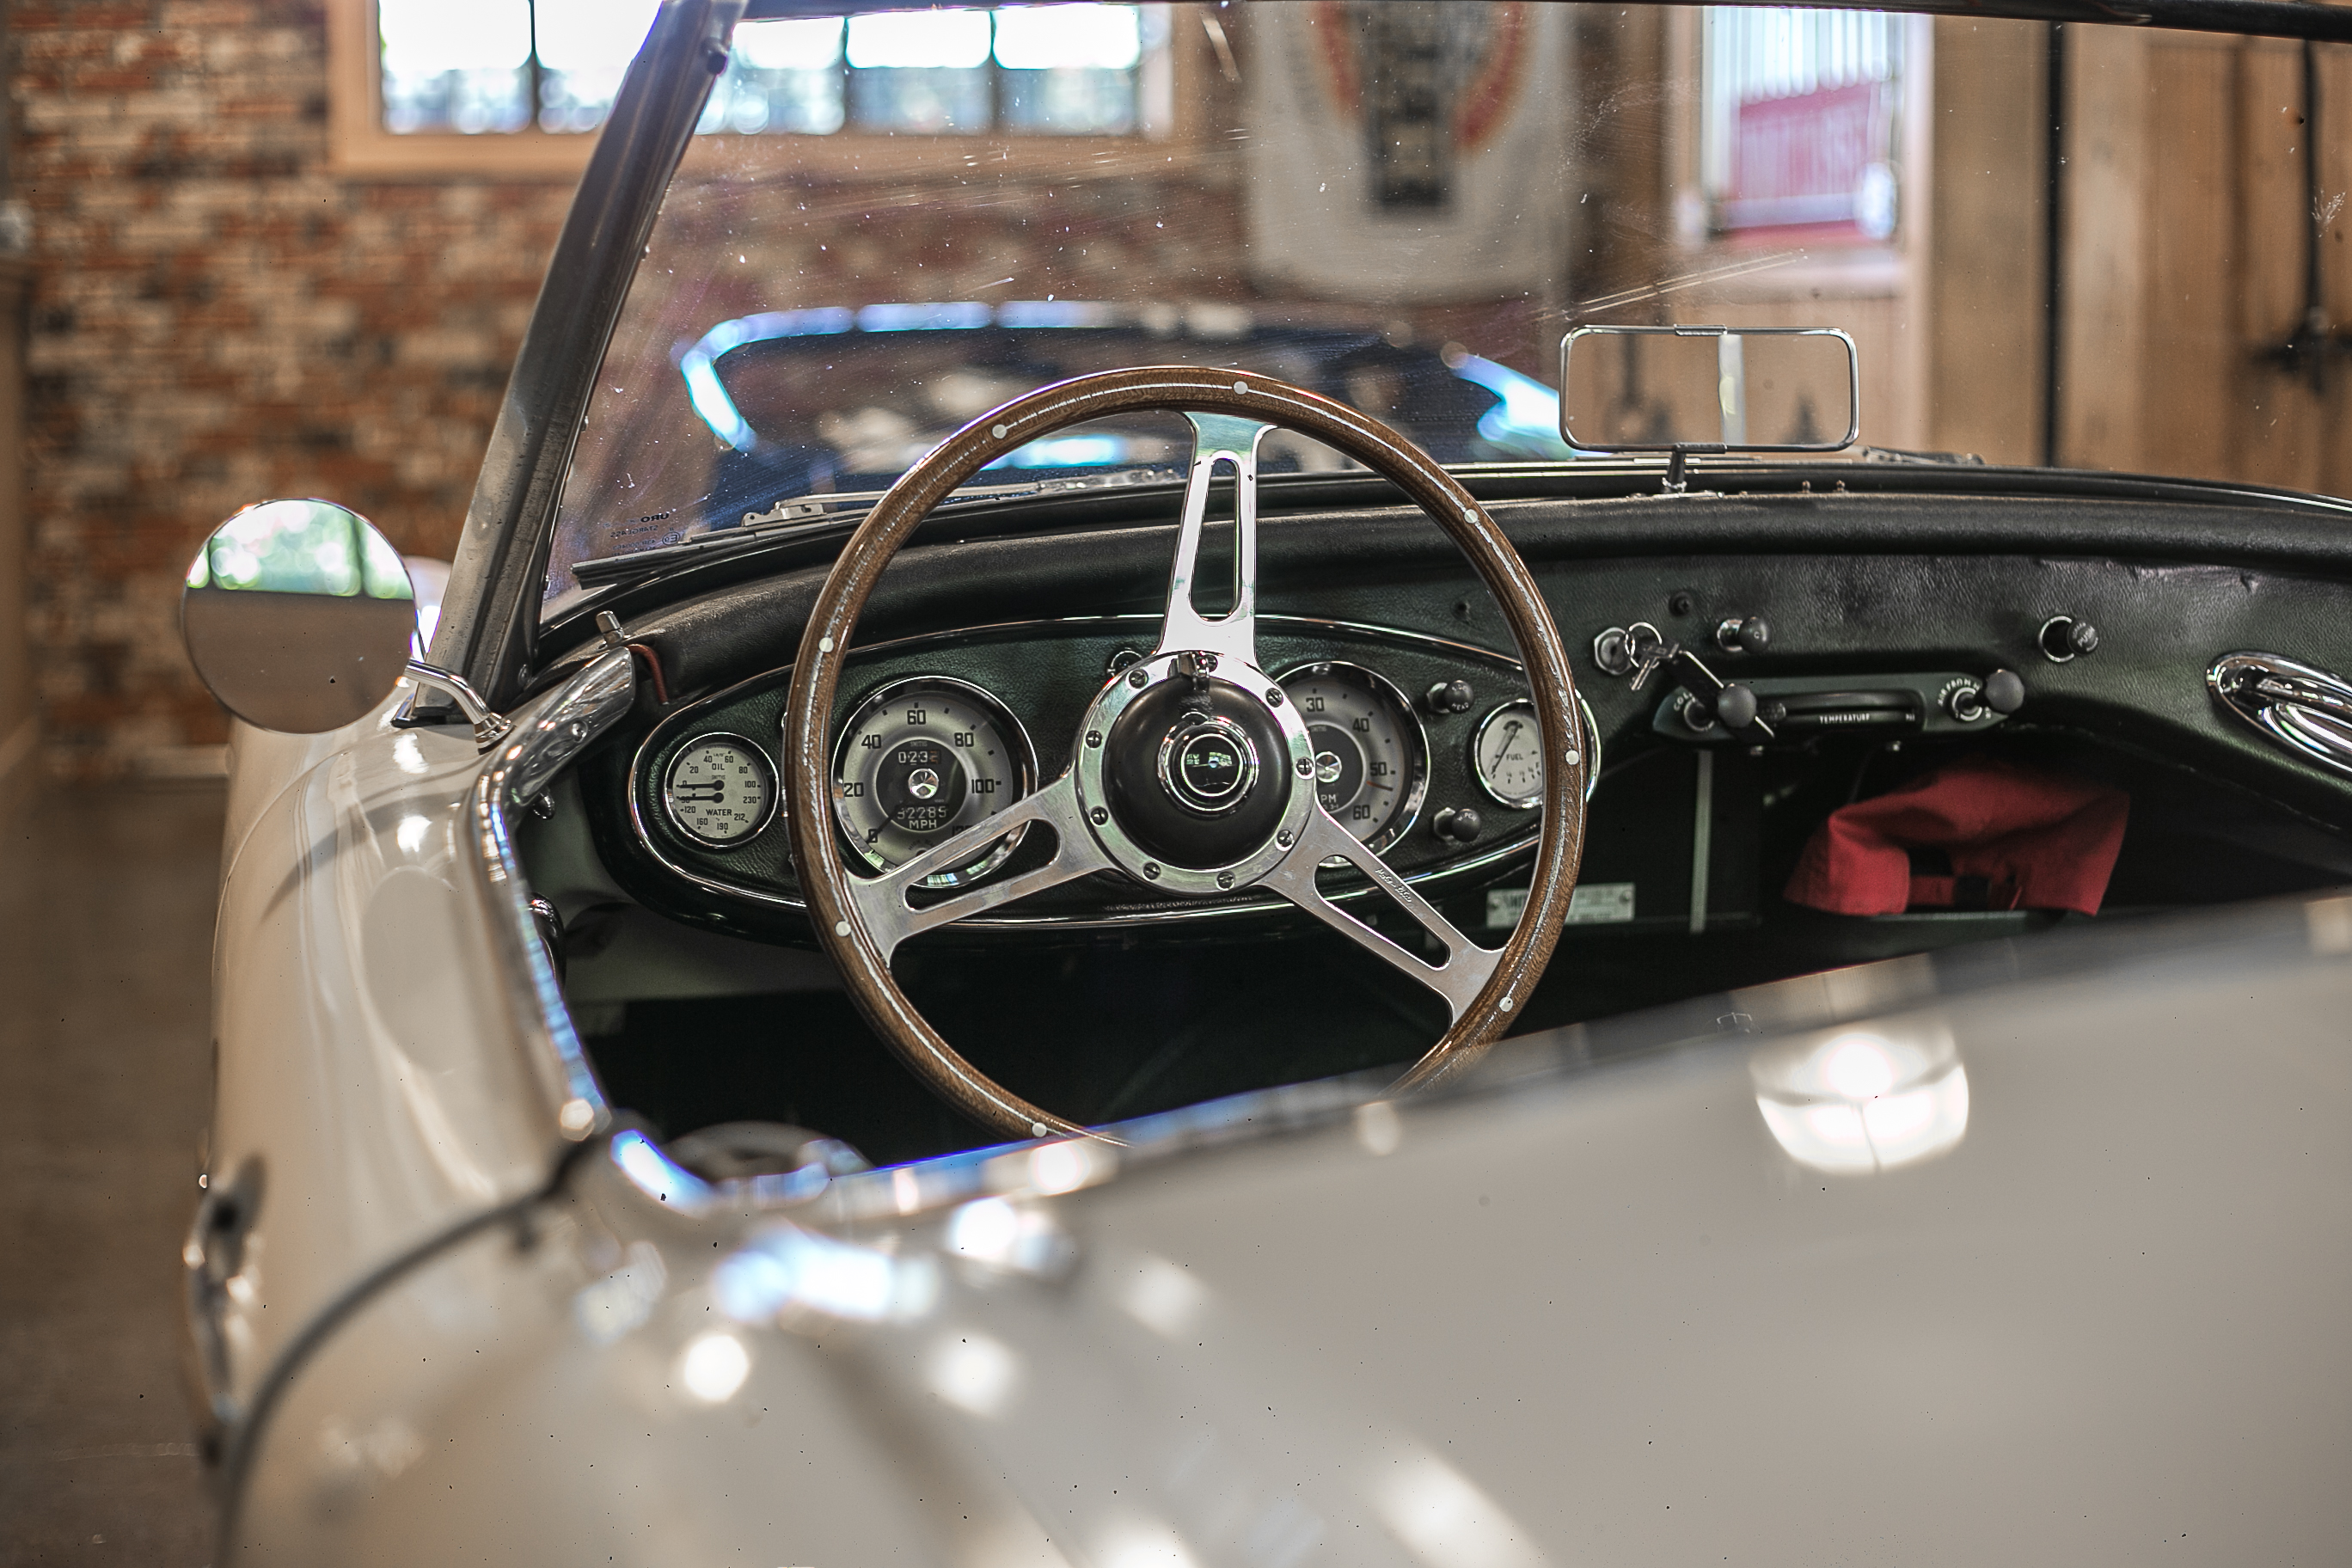 A 1960 Austin-Healey 3000 MkI at the Caccavo garage in Thousand Oaks, California.